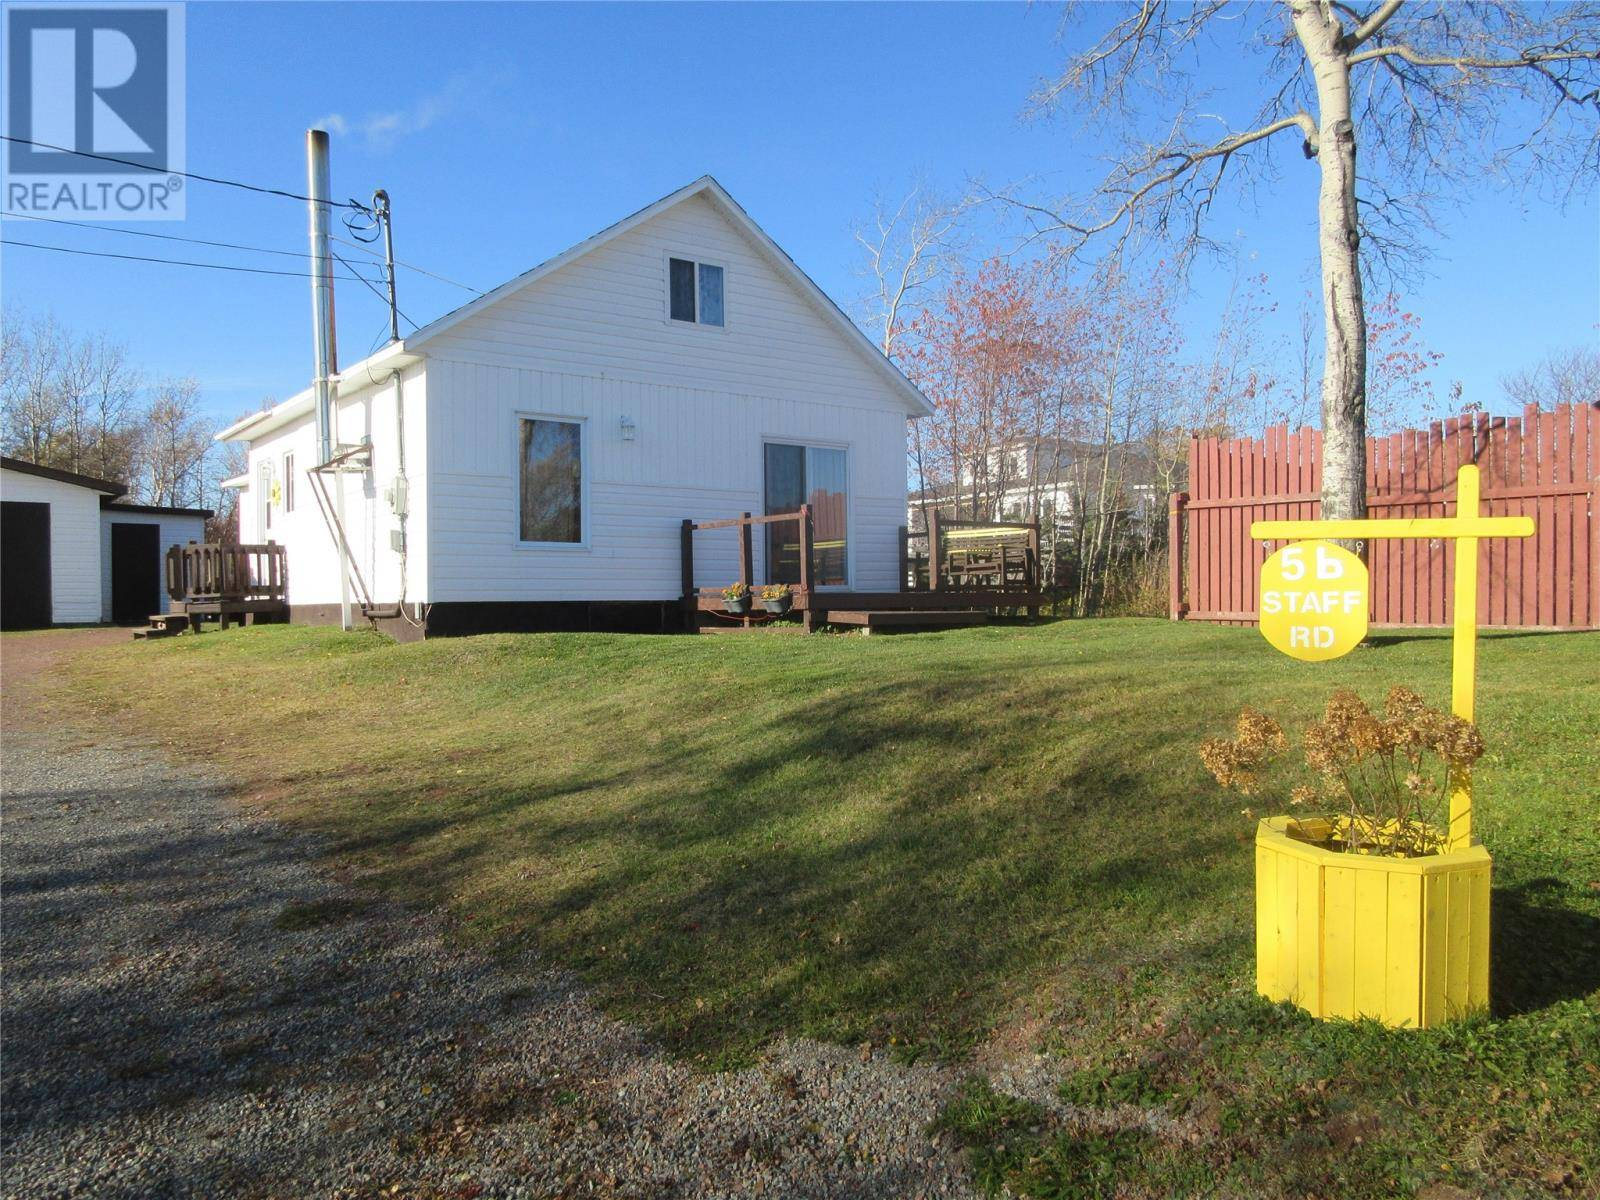 House for sale at 5 Staff Rd Botwood Newfoundland - MLS: 1198991